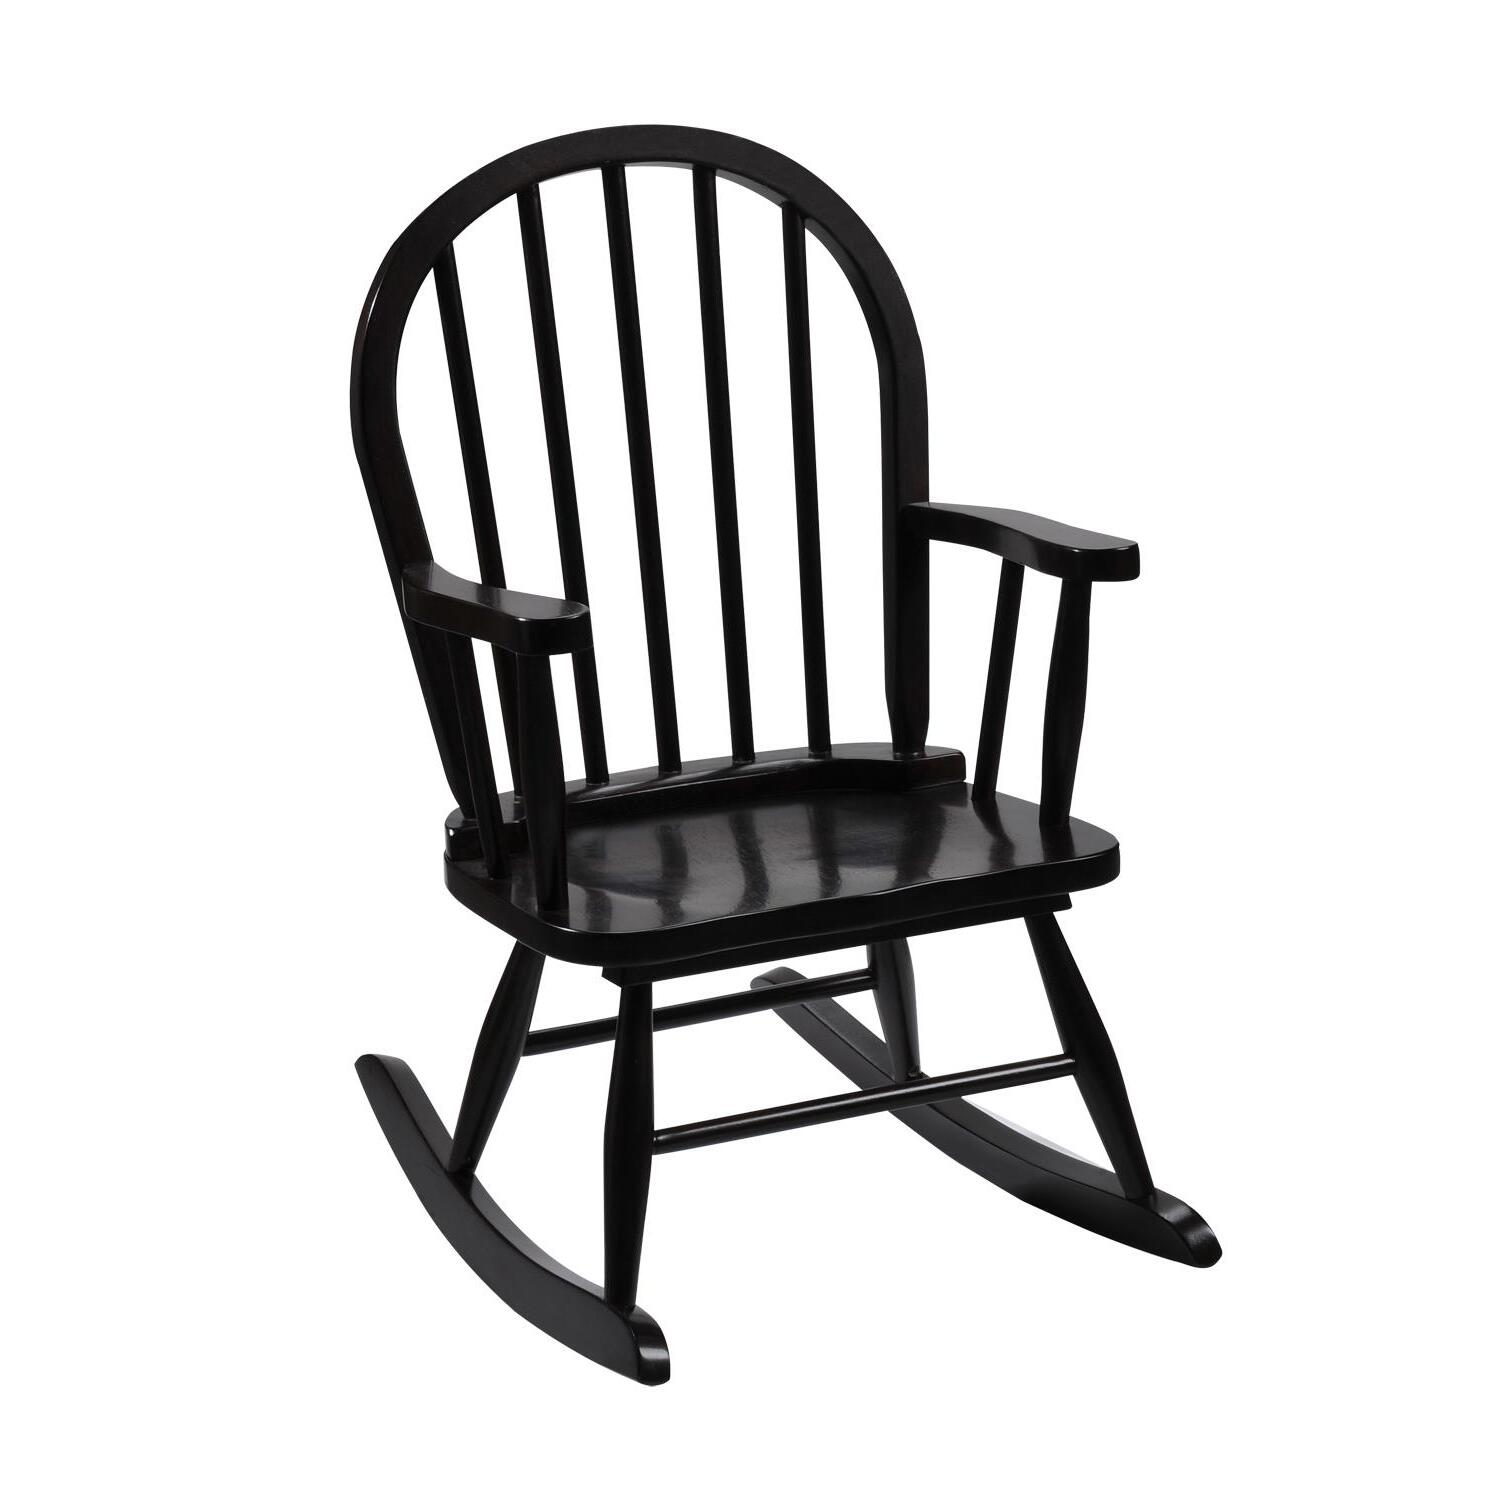 Childrens Rocking Chair Giftmark Windsor Childrens Rocking Chair From 66 91 To